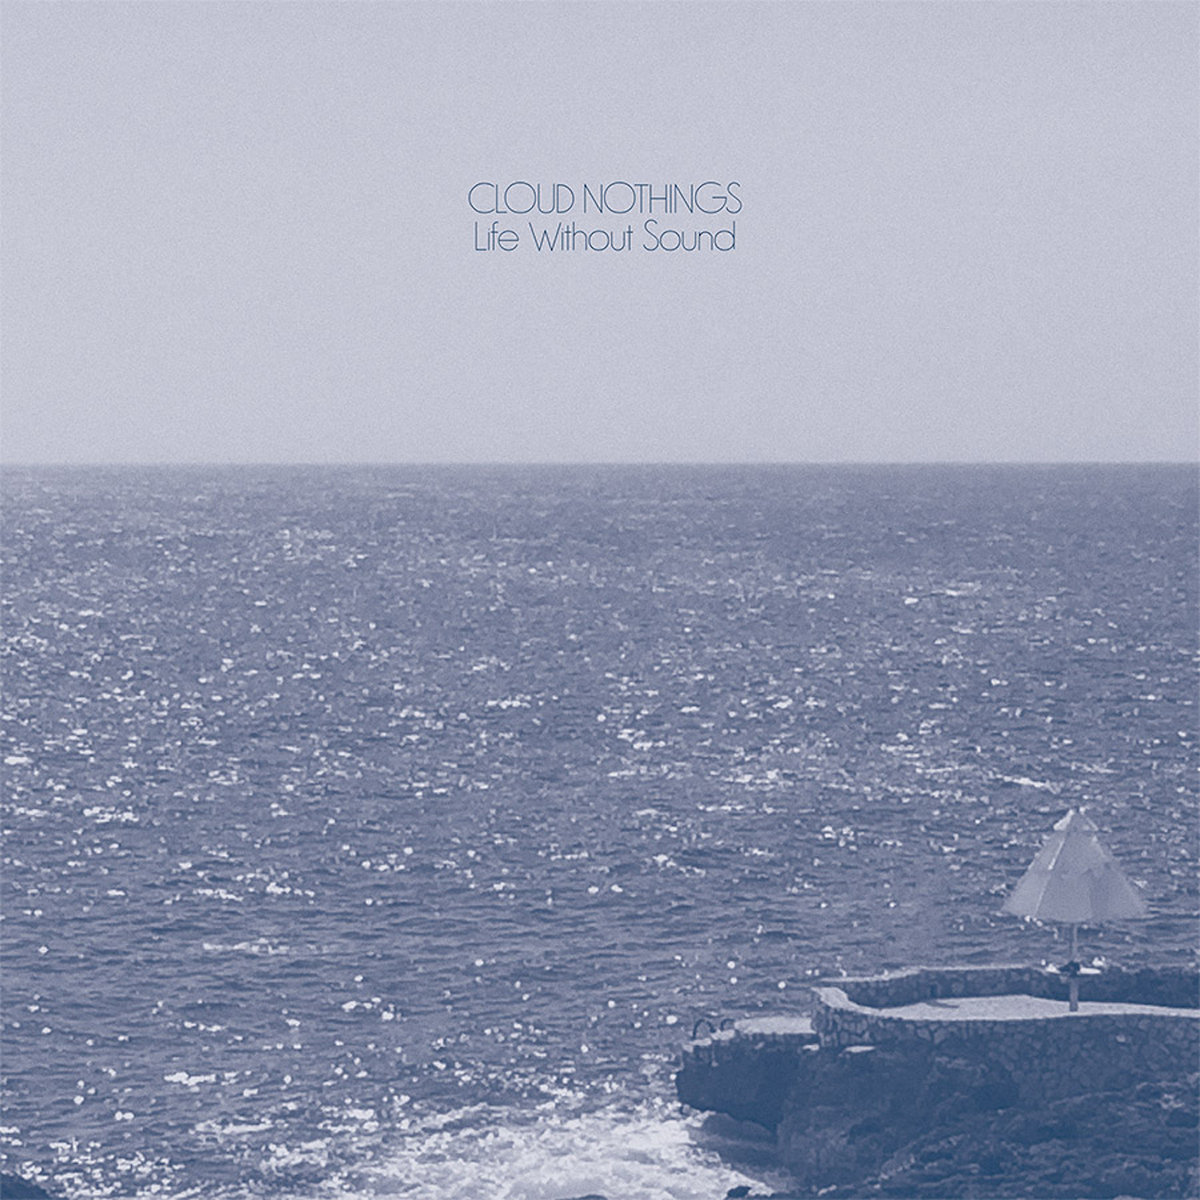 Cloud Nothings, Life Without Sound